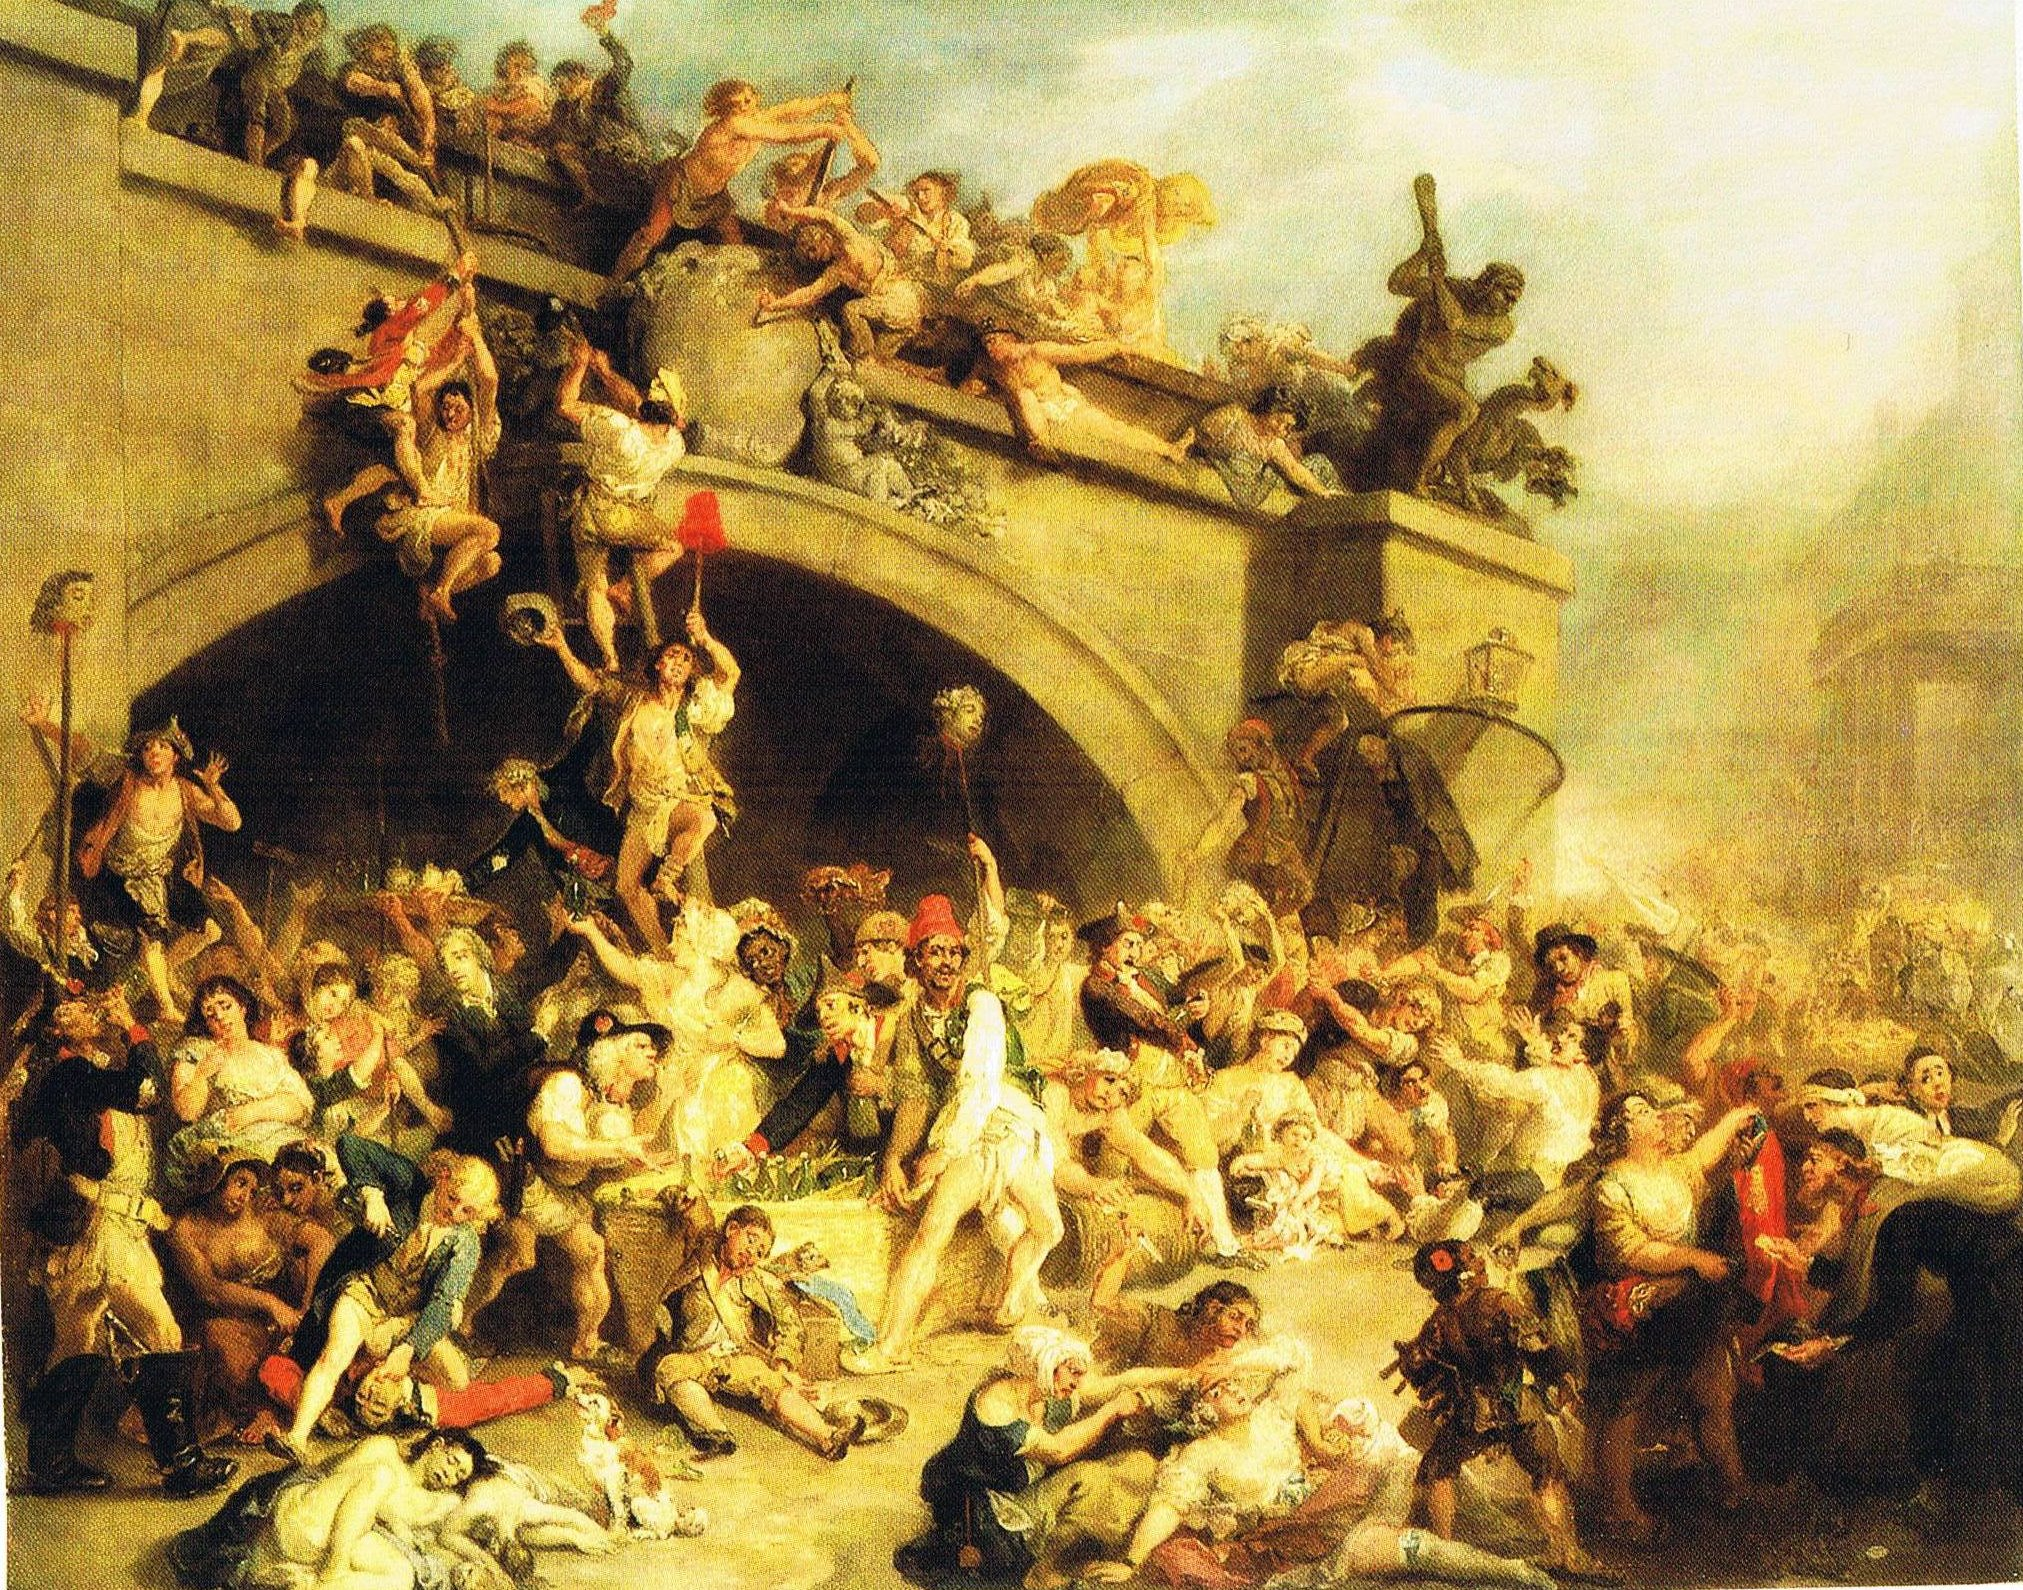 what was revolutionary about the french The french revolution was one of the most important upheavals in world history this course examines its origins, course and outcomes this course is designed for you to work through successfully on your own however you will not be alone on this journey use the resources included in the course and.